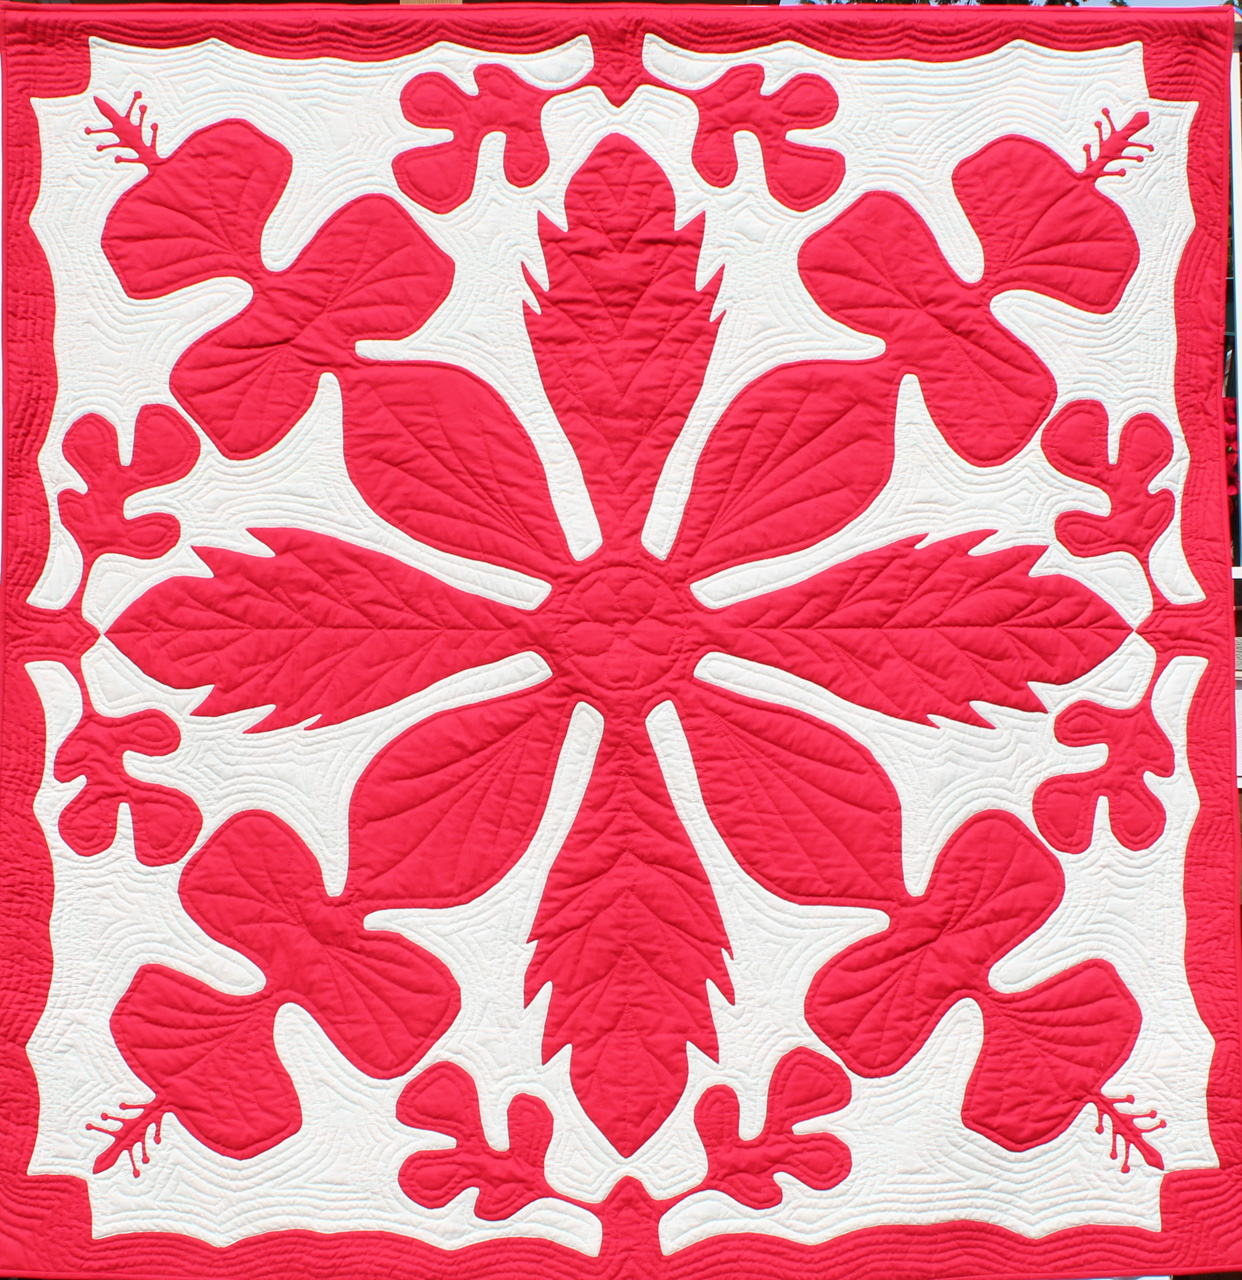 Hibiscus Quiltin Red and White by Noreen Tretick